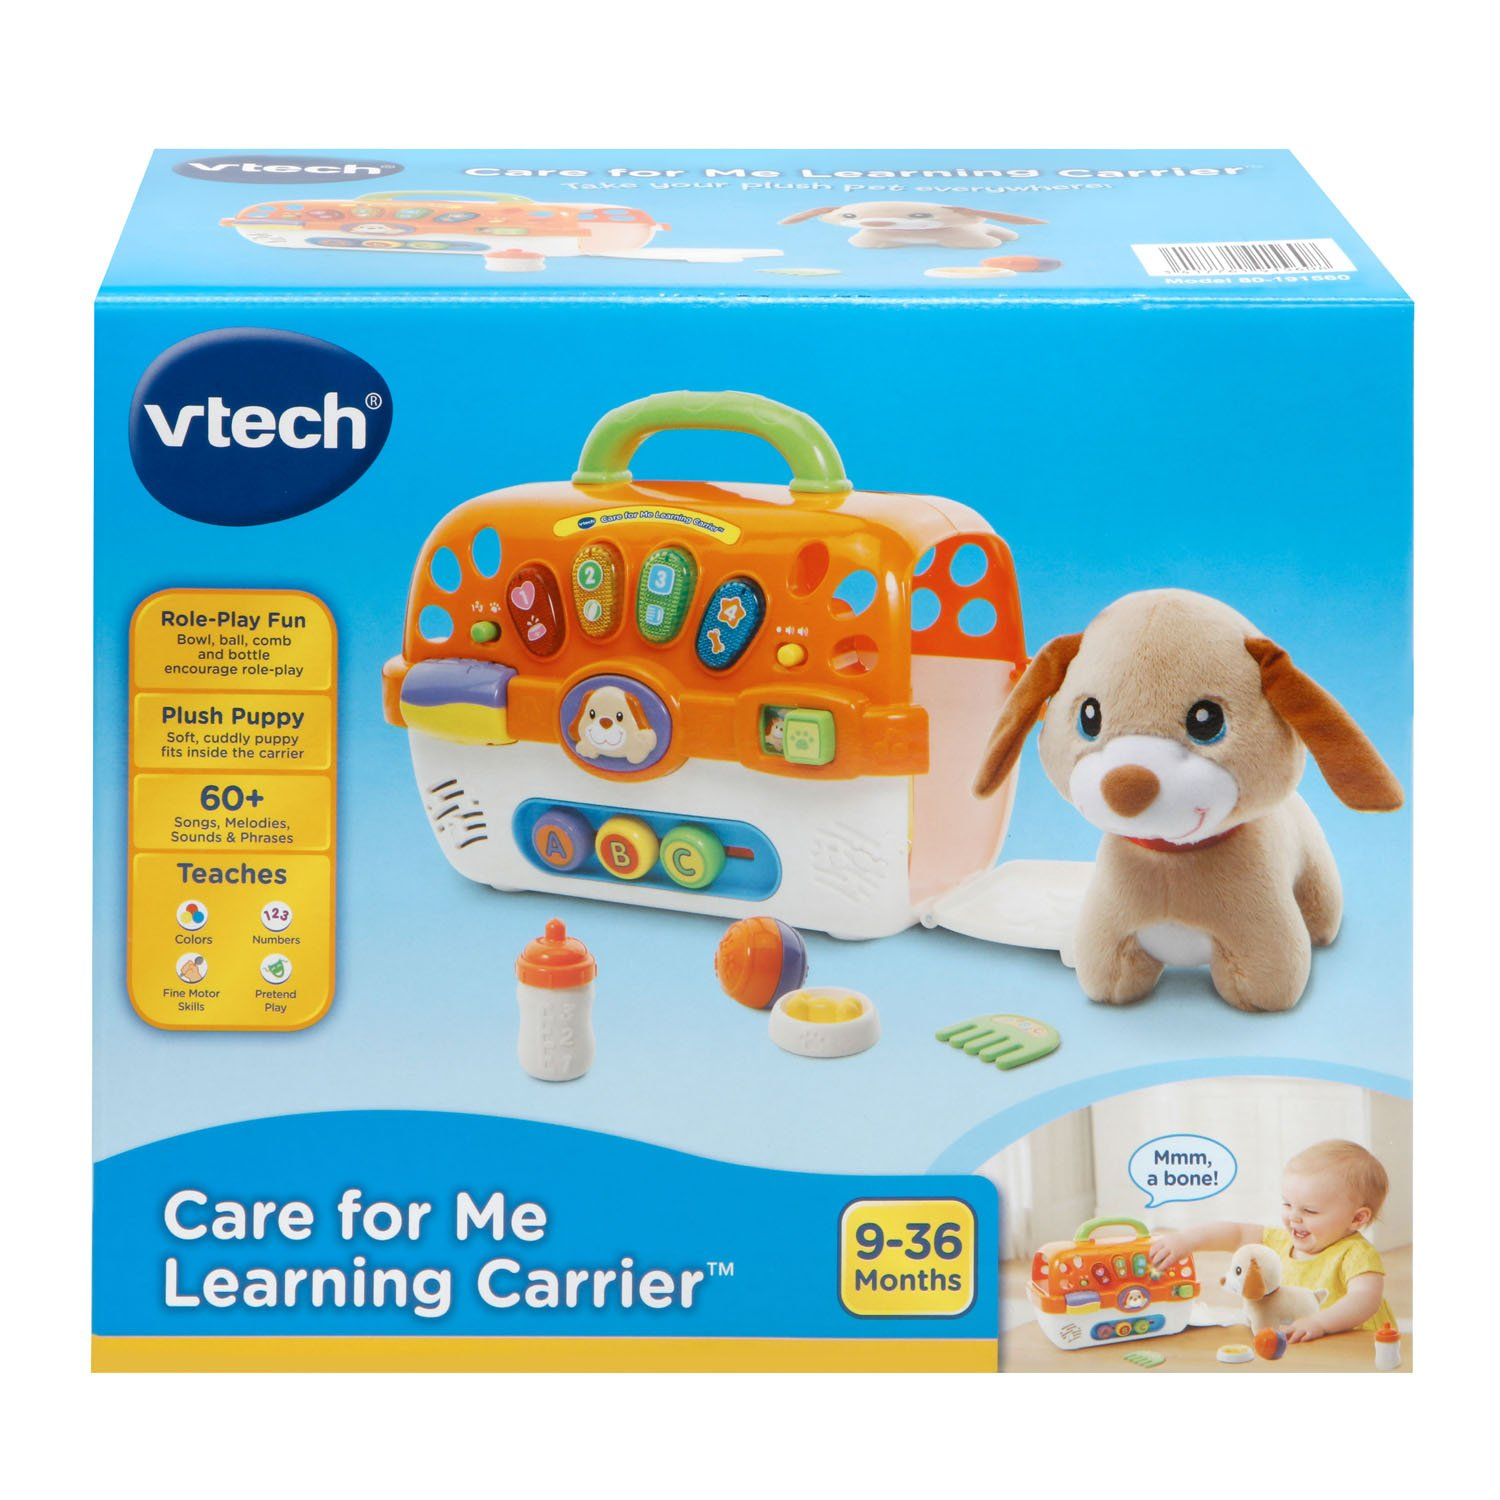 VTech Care for Me Learning Carrier Toy, Orange by VTech (Image #6)